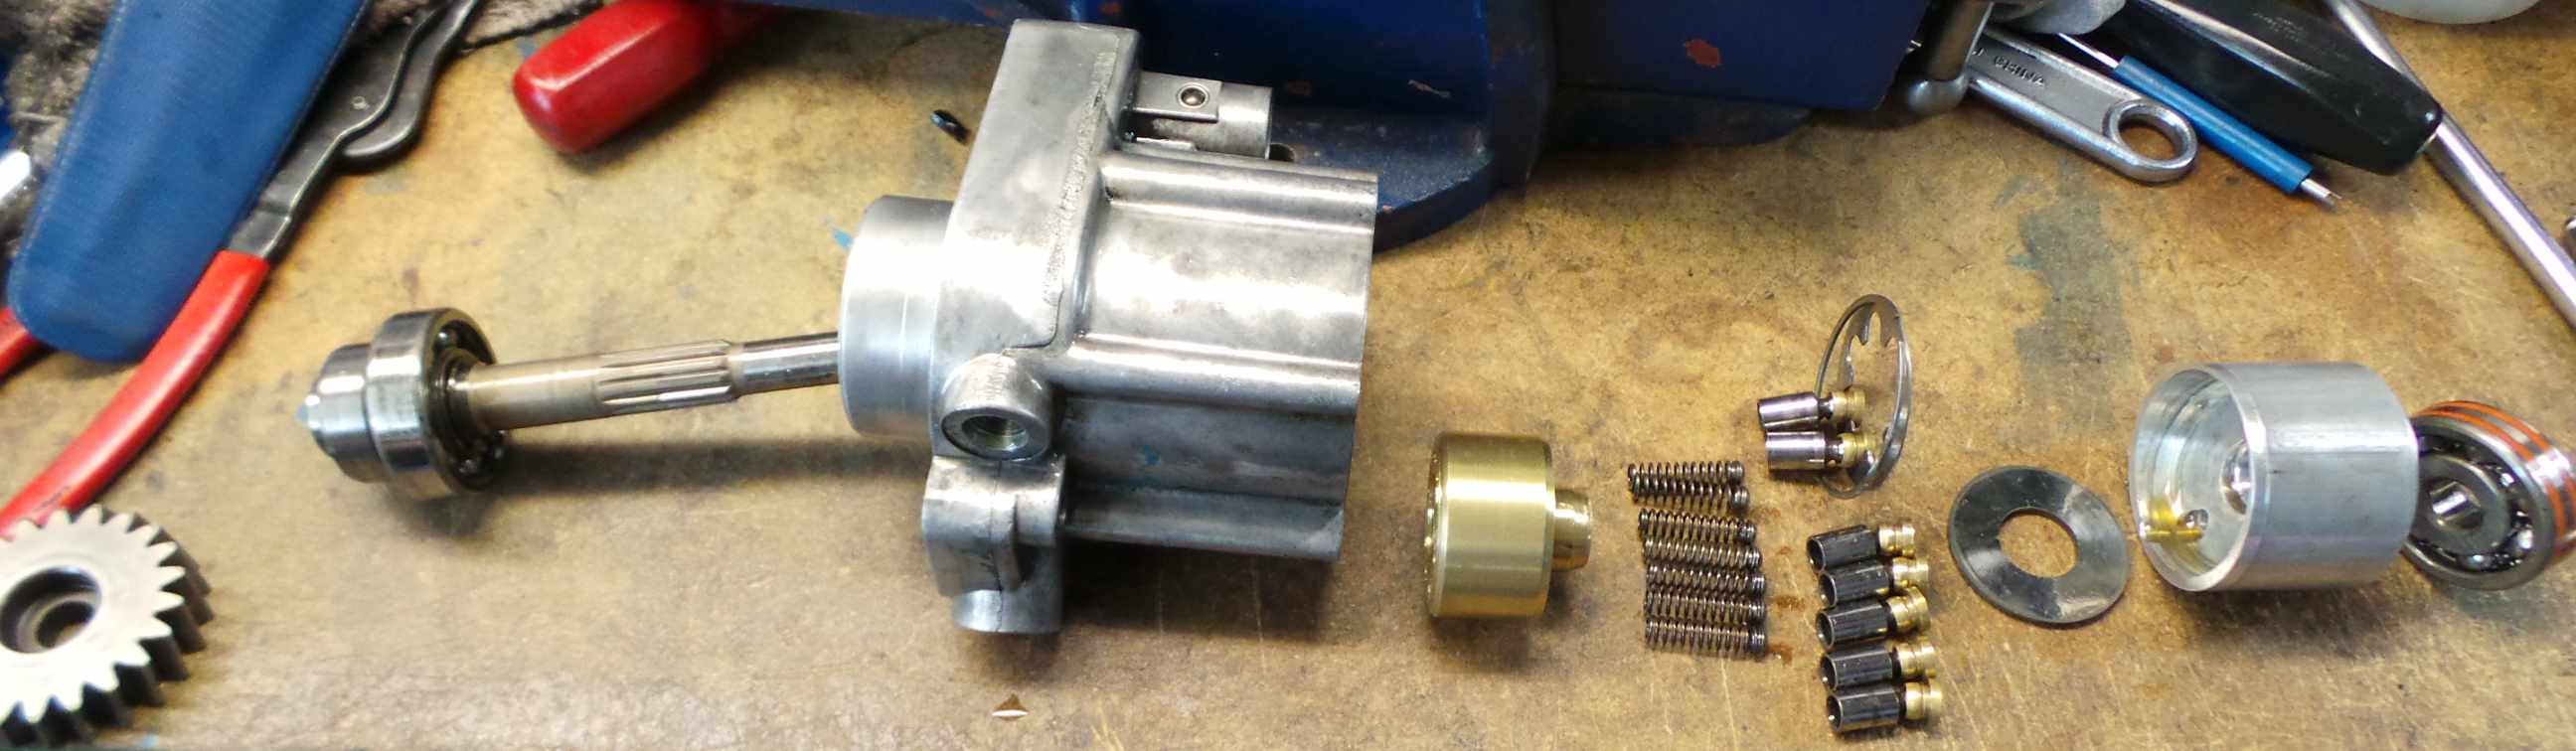 Above: Left to right: Gear, Shaft, Main bearing, pump housing with steal  valve seat still inside, brass cylinder core, piston springs, pistons, ...